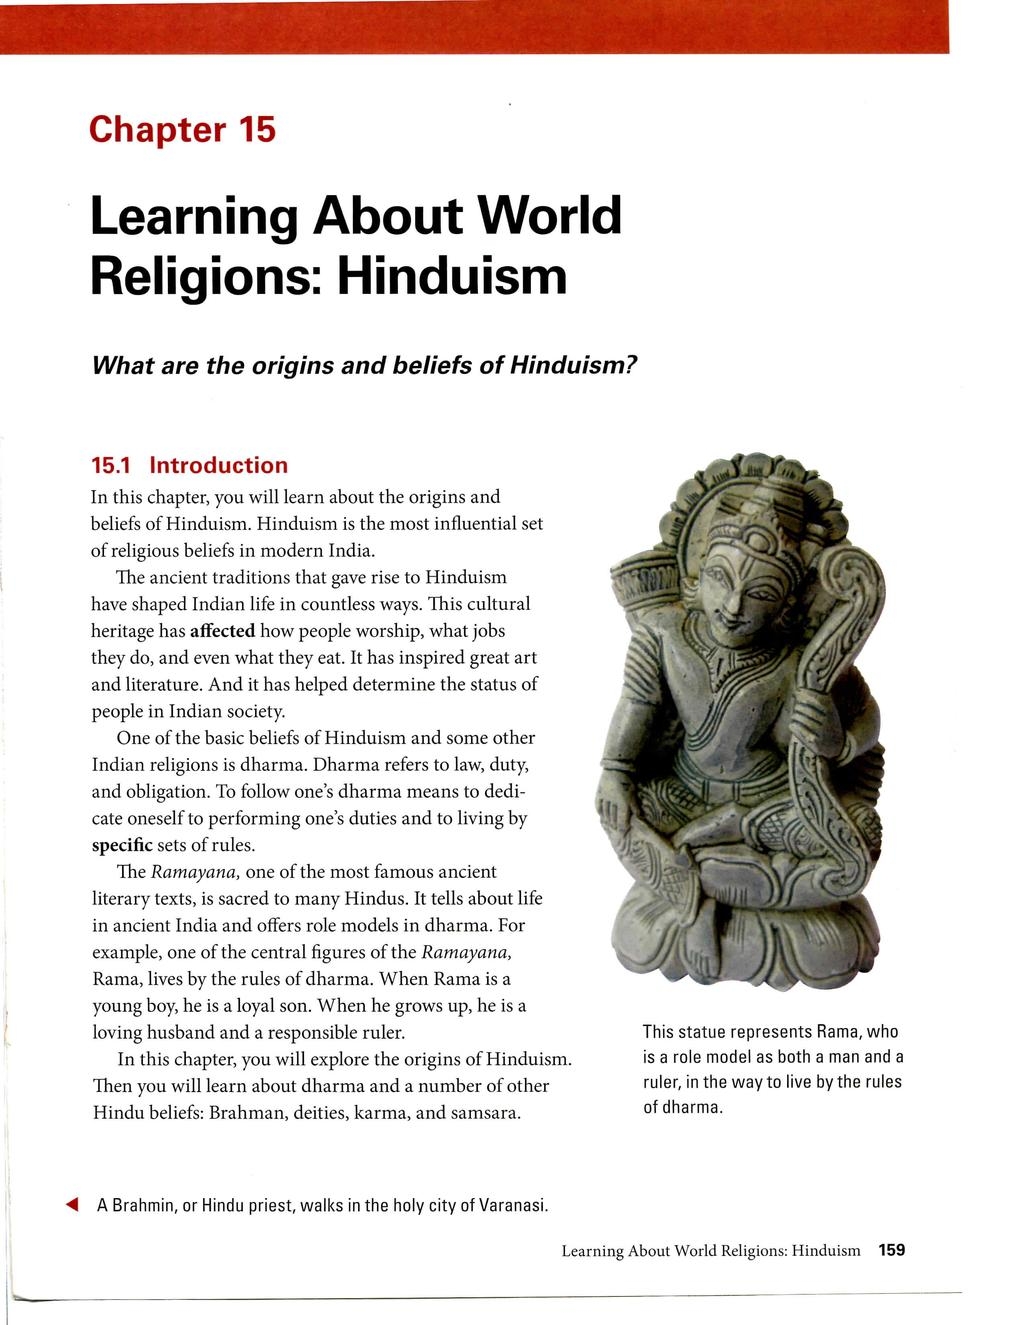 Chapter 15 Learning About World Religions: Hinduism What are the origins and beliefs of Hinduism? 15.1 Introduction In this chapter, you will learn about the origins and beliefs of Hinduism.